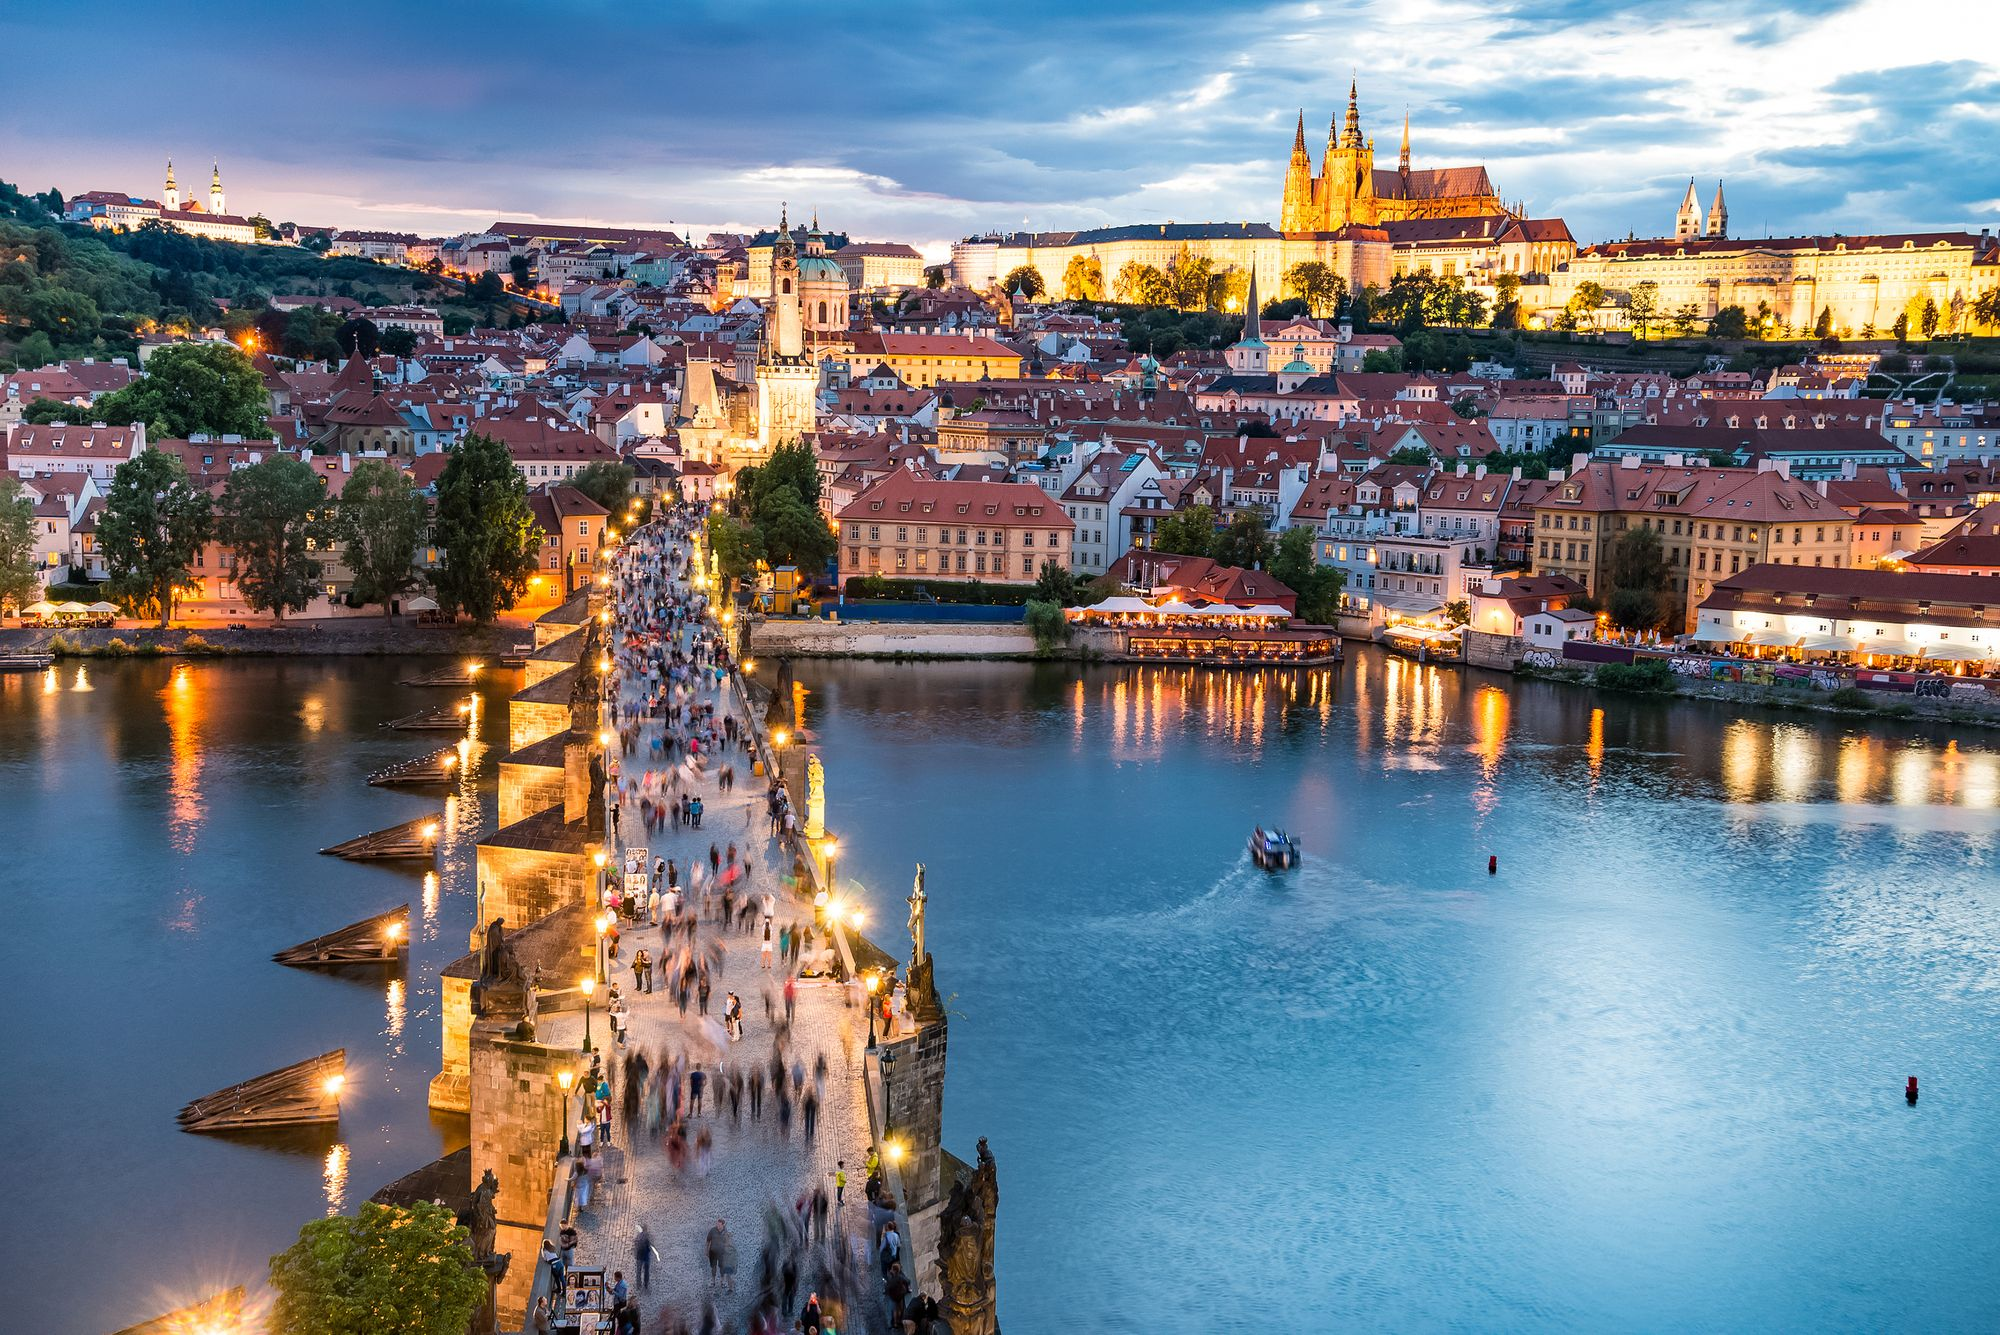 Praha (Prague), Czech Republic - Monterrasol small group tours to Praha (Prague), Czech Republic. Travel agency offers small group car tours to see Praha (Prague) in Czech Republic. Order small group tour to Praha (Prague) with departure date on request.